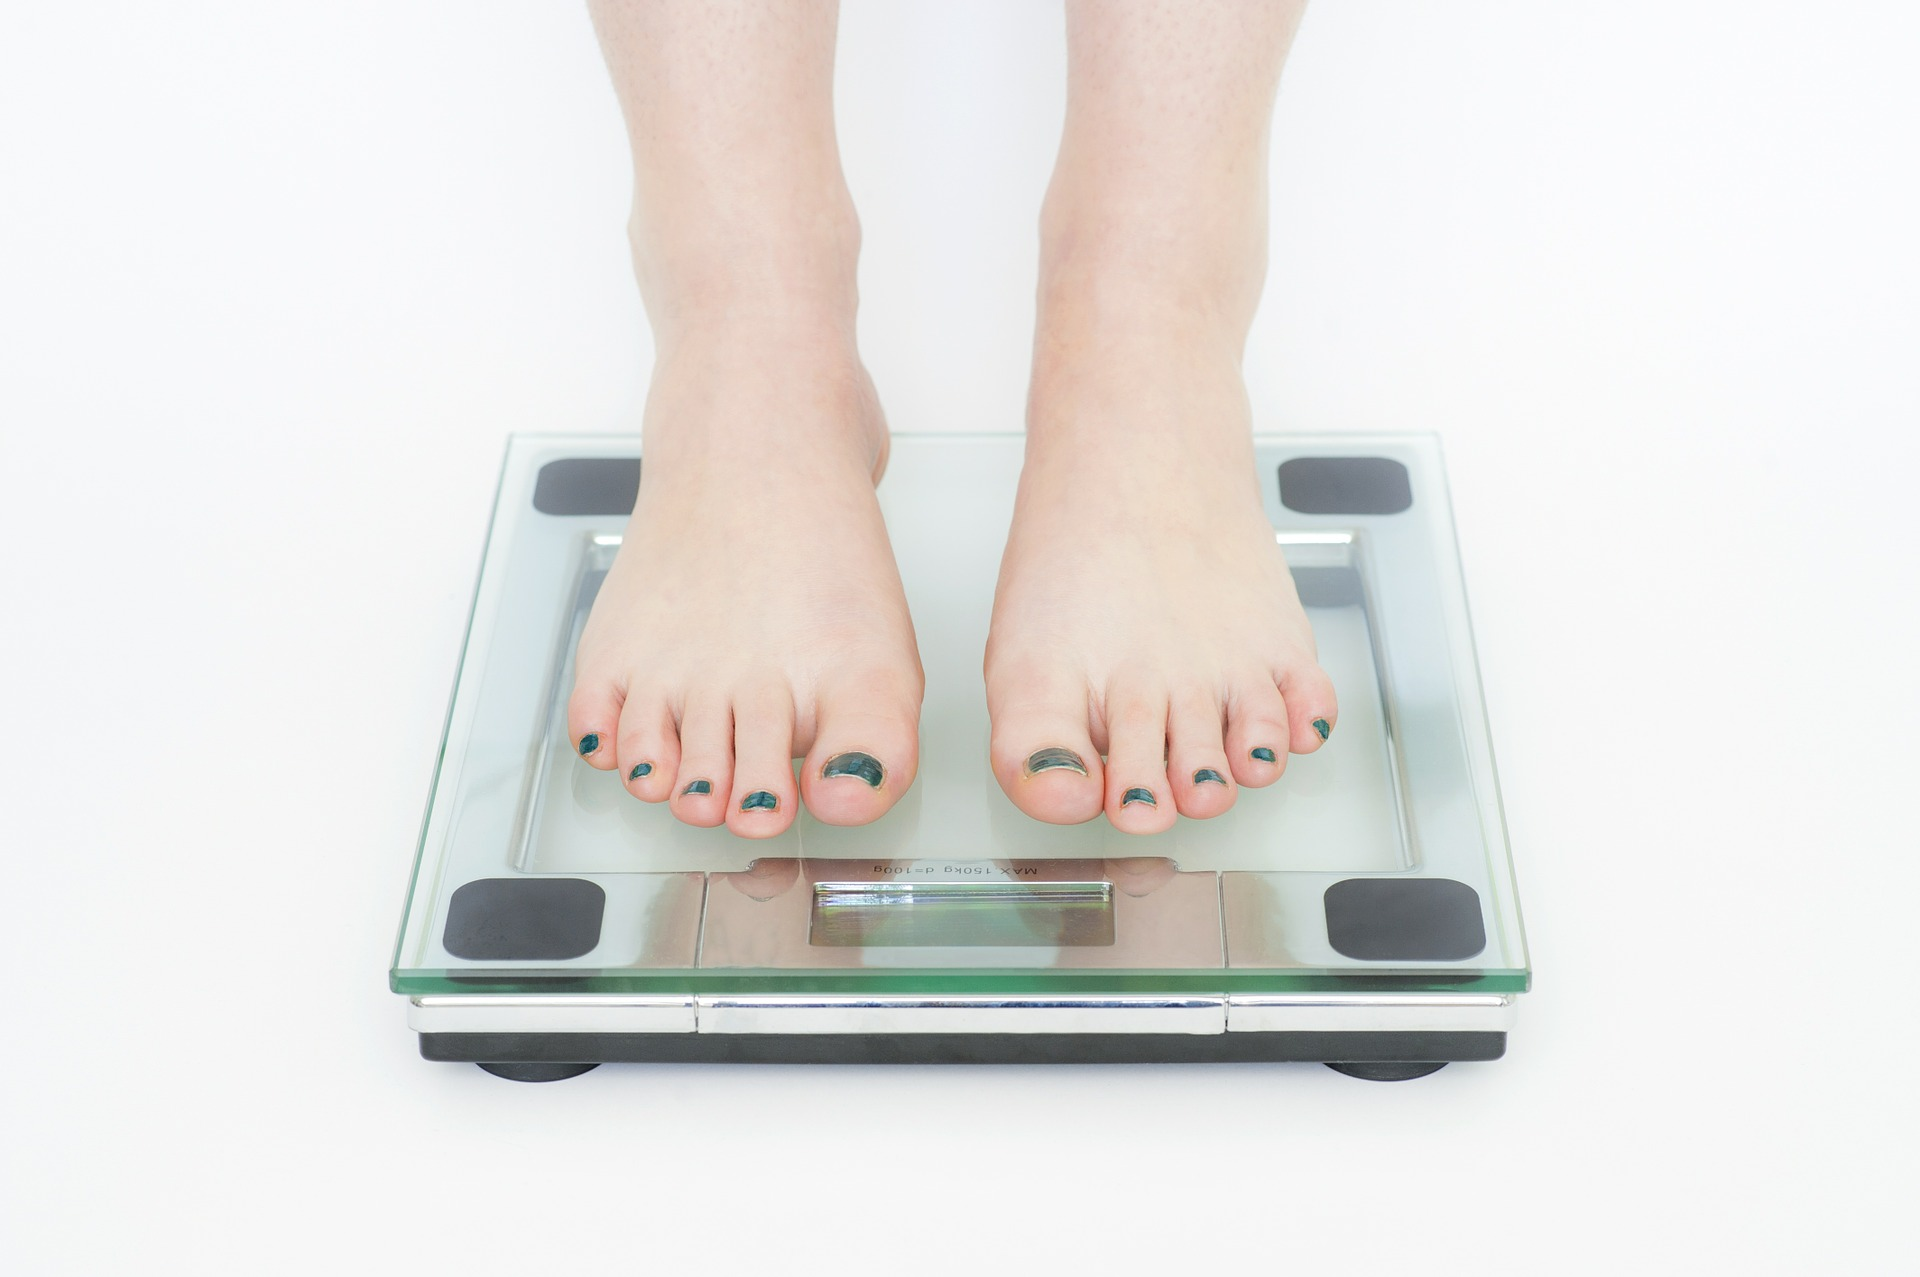 Photo of feet standing on a scale. Scales can show your weight, BMI and body fat.